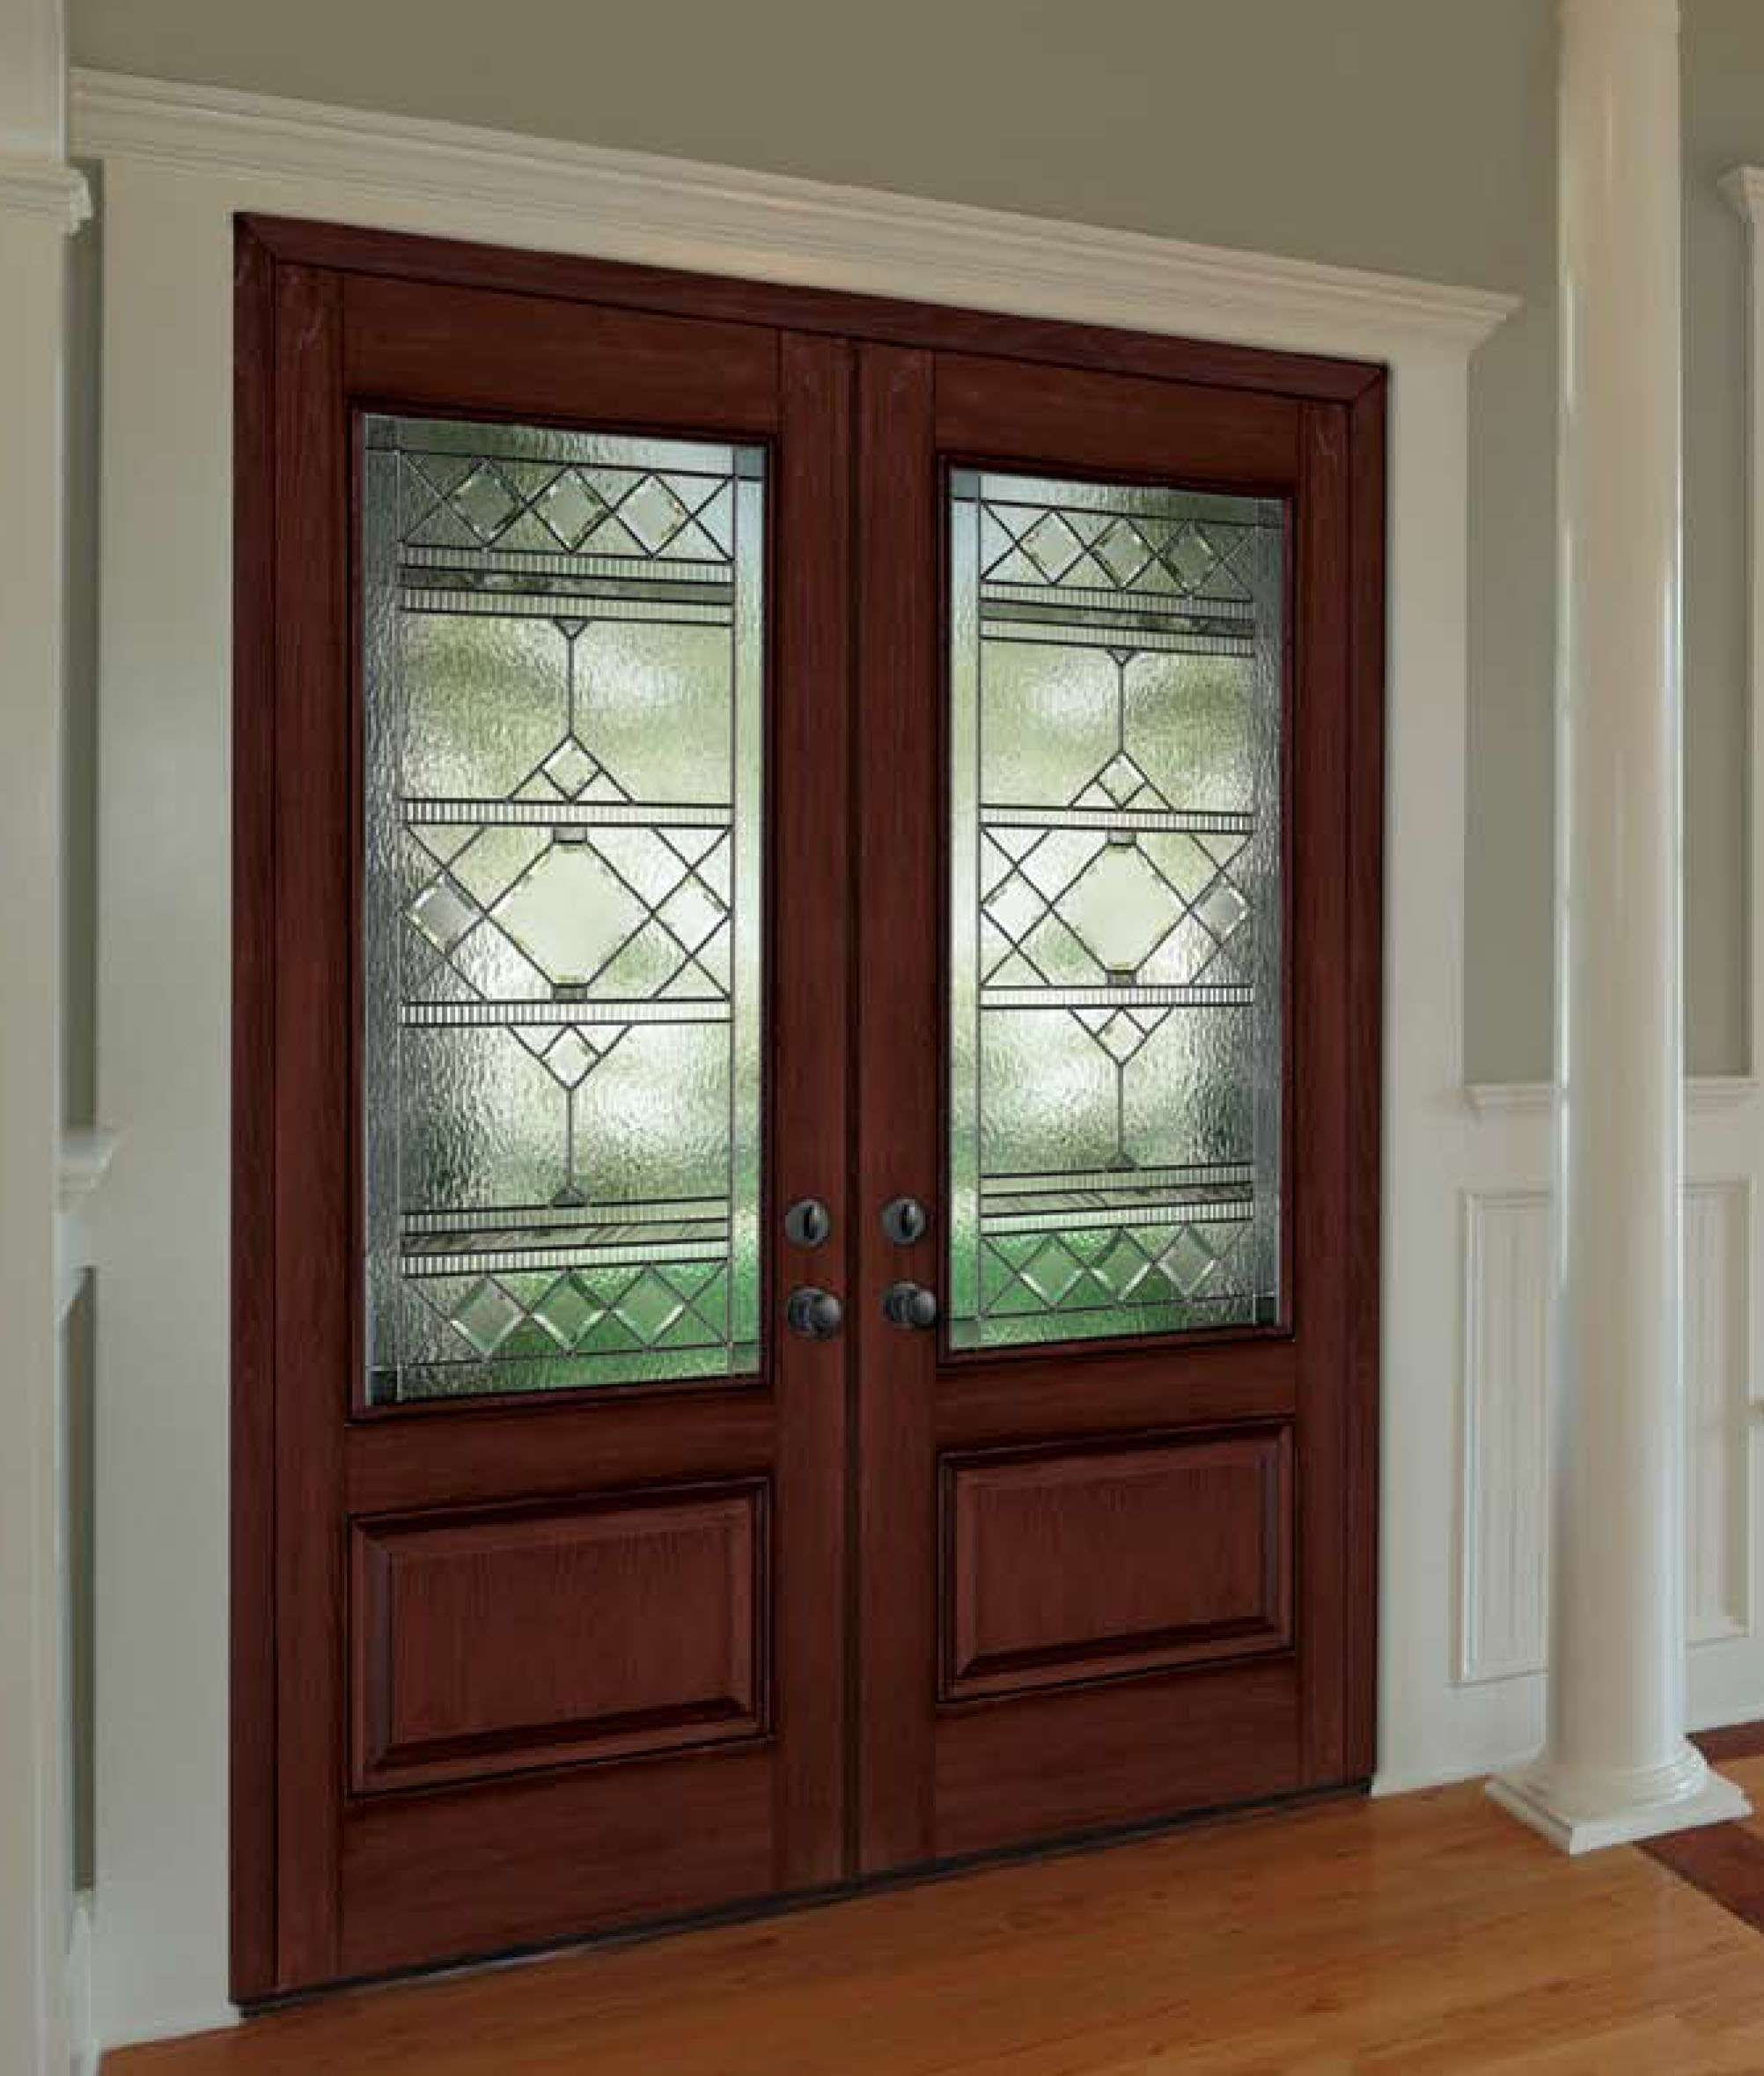 Fusion doors brock doors windows brock doors windows for Exterior doors and windows